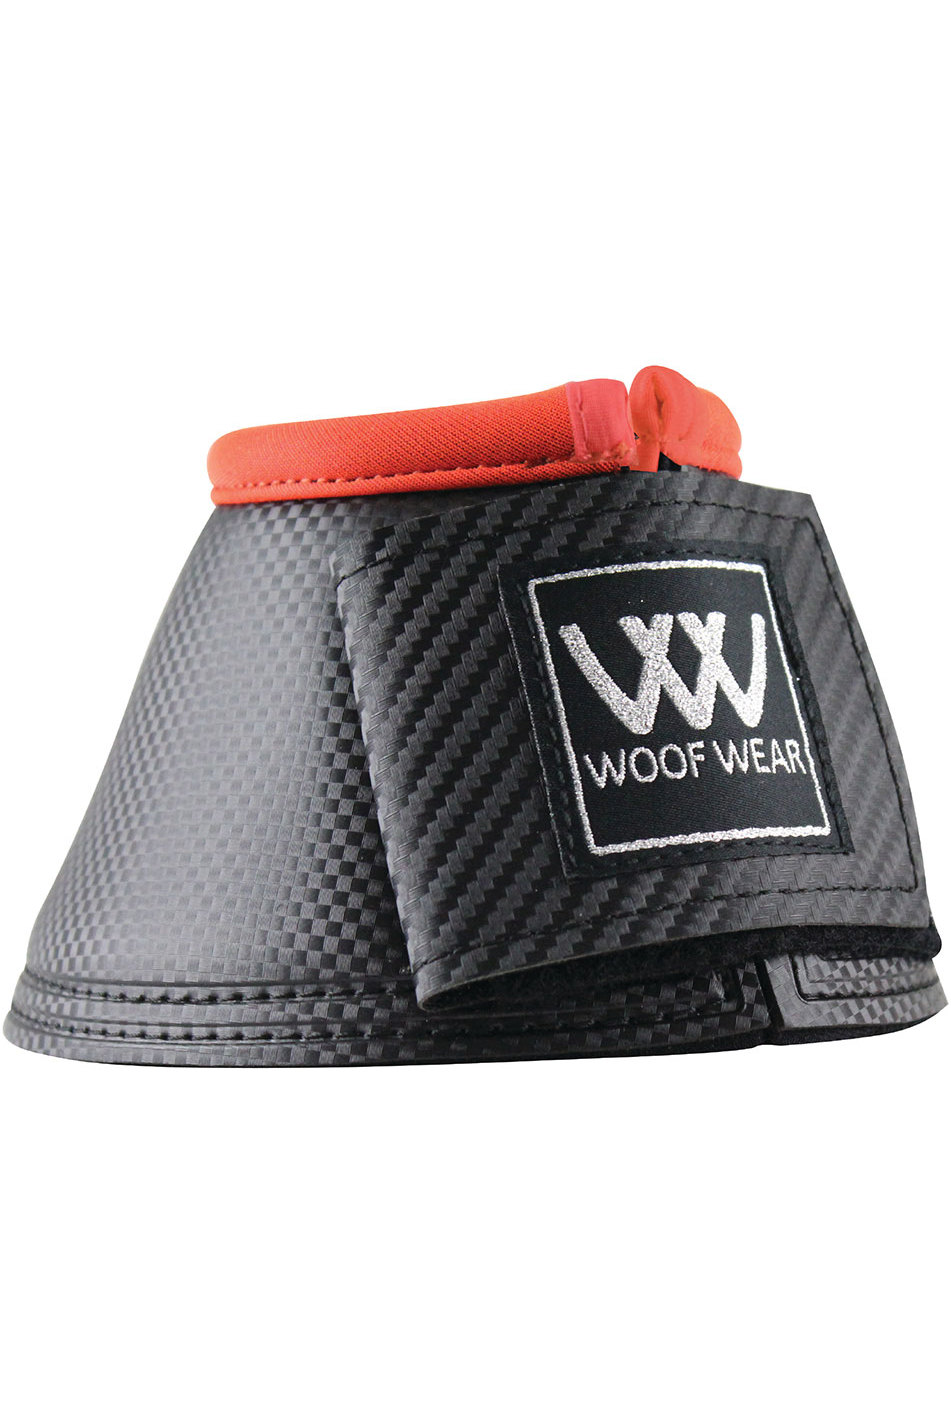 Woof Wear Pro Overreach Boots Orange The Drillshed